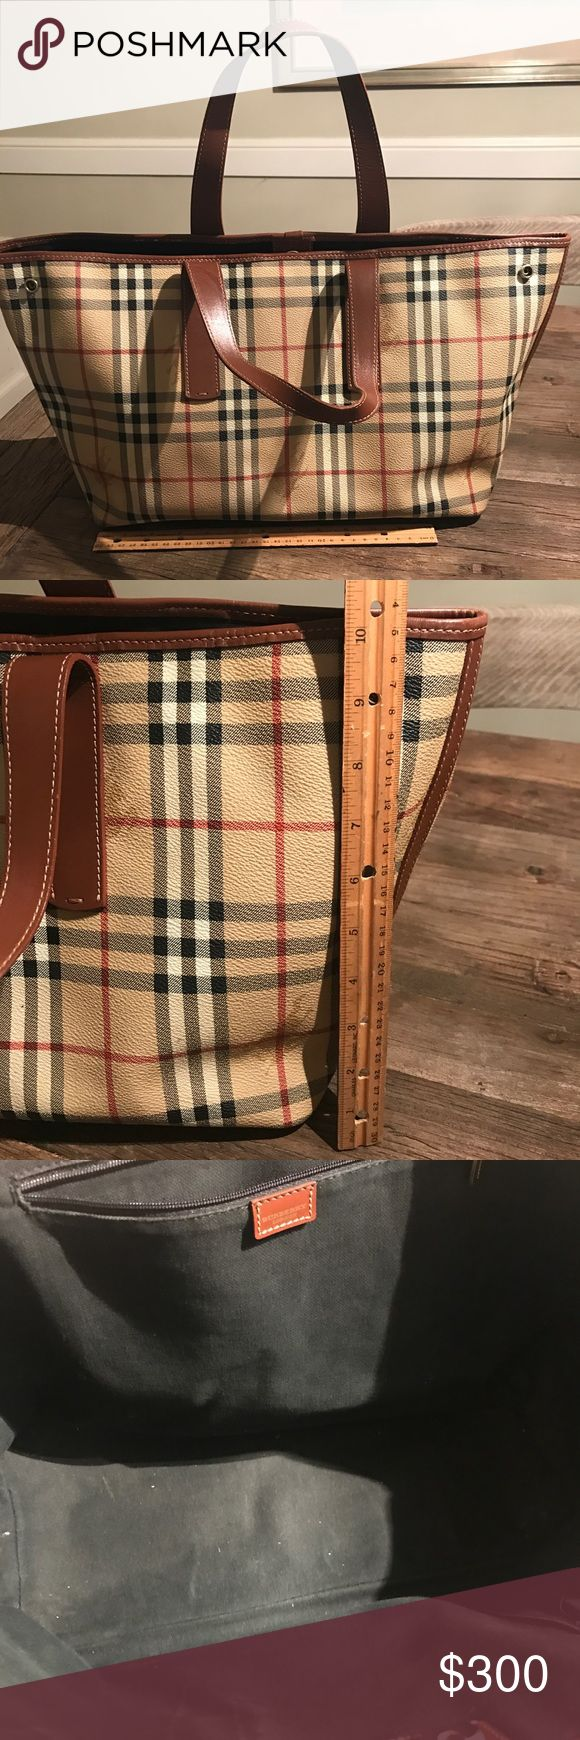 Burberry Medium Tote Circa 2005 and I used this as a diaper bag when my son was a baby. Burberry checked bag in very good condition. Some marks but nothing noticeable. Handles in very good shape. This bag has been in my closet for 12 years! Authentic and clean! Make me an offer! Burberry Bags Totes